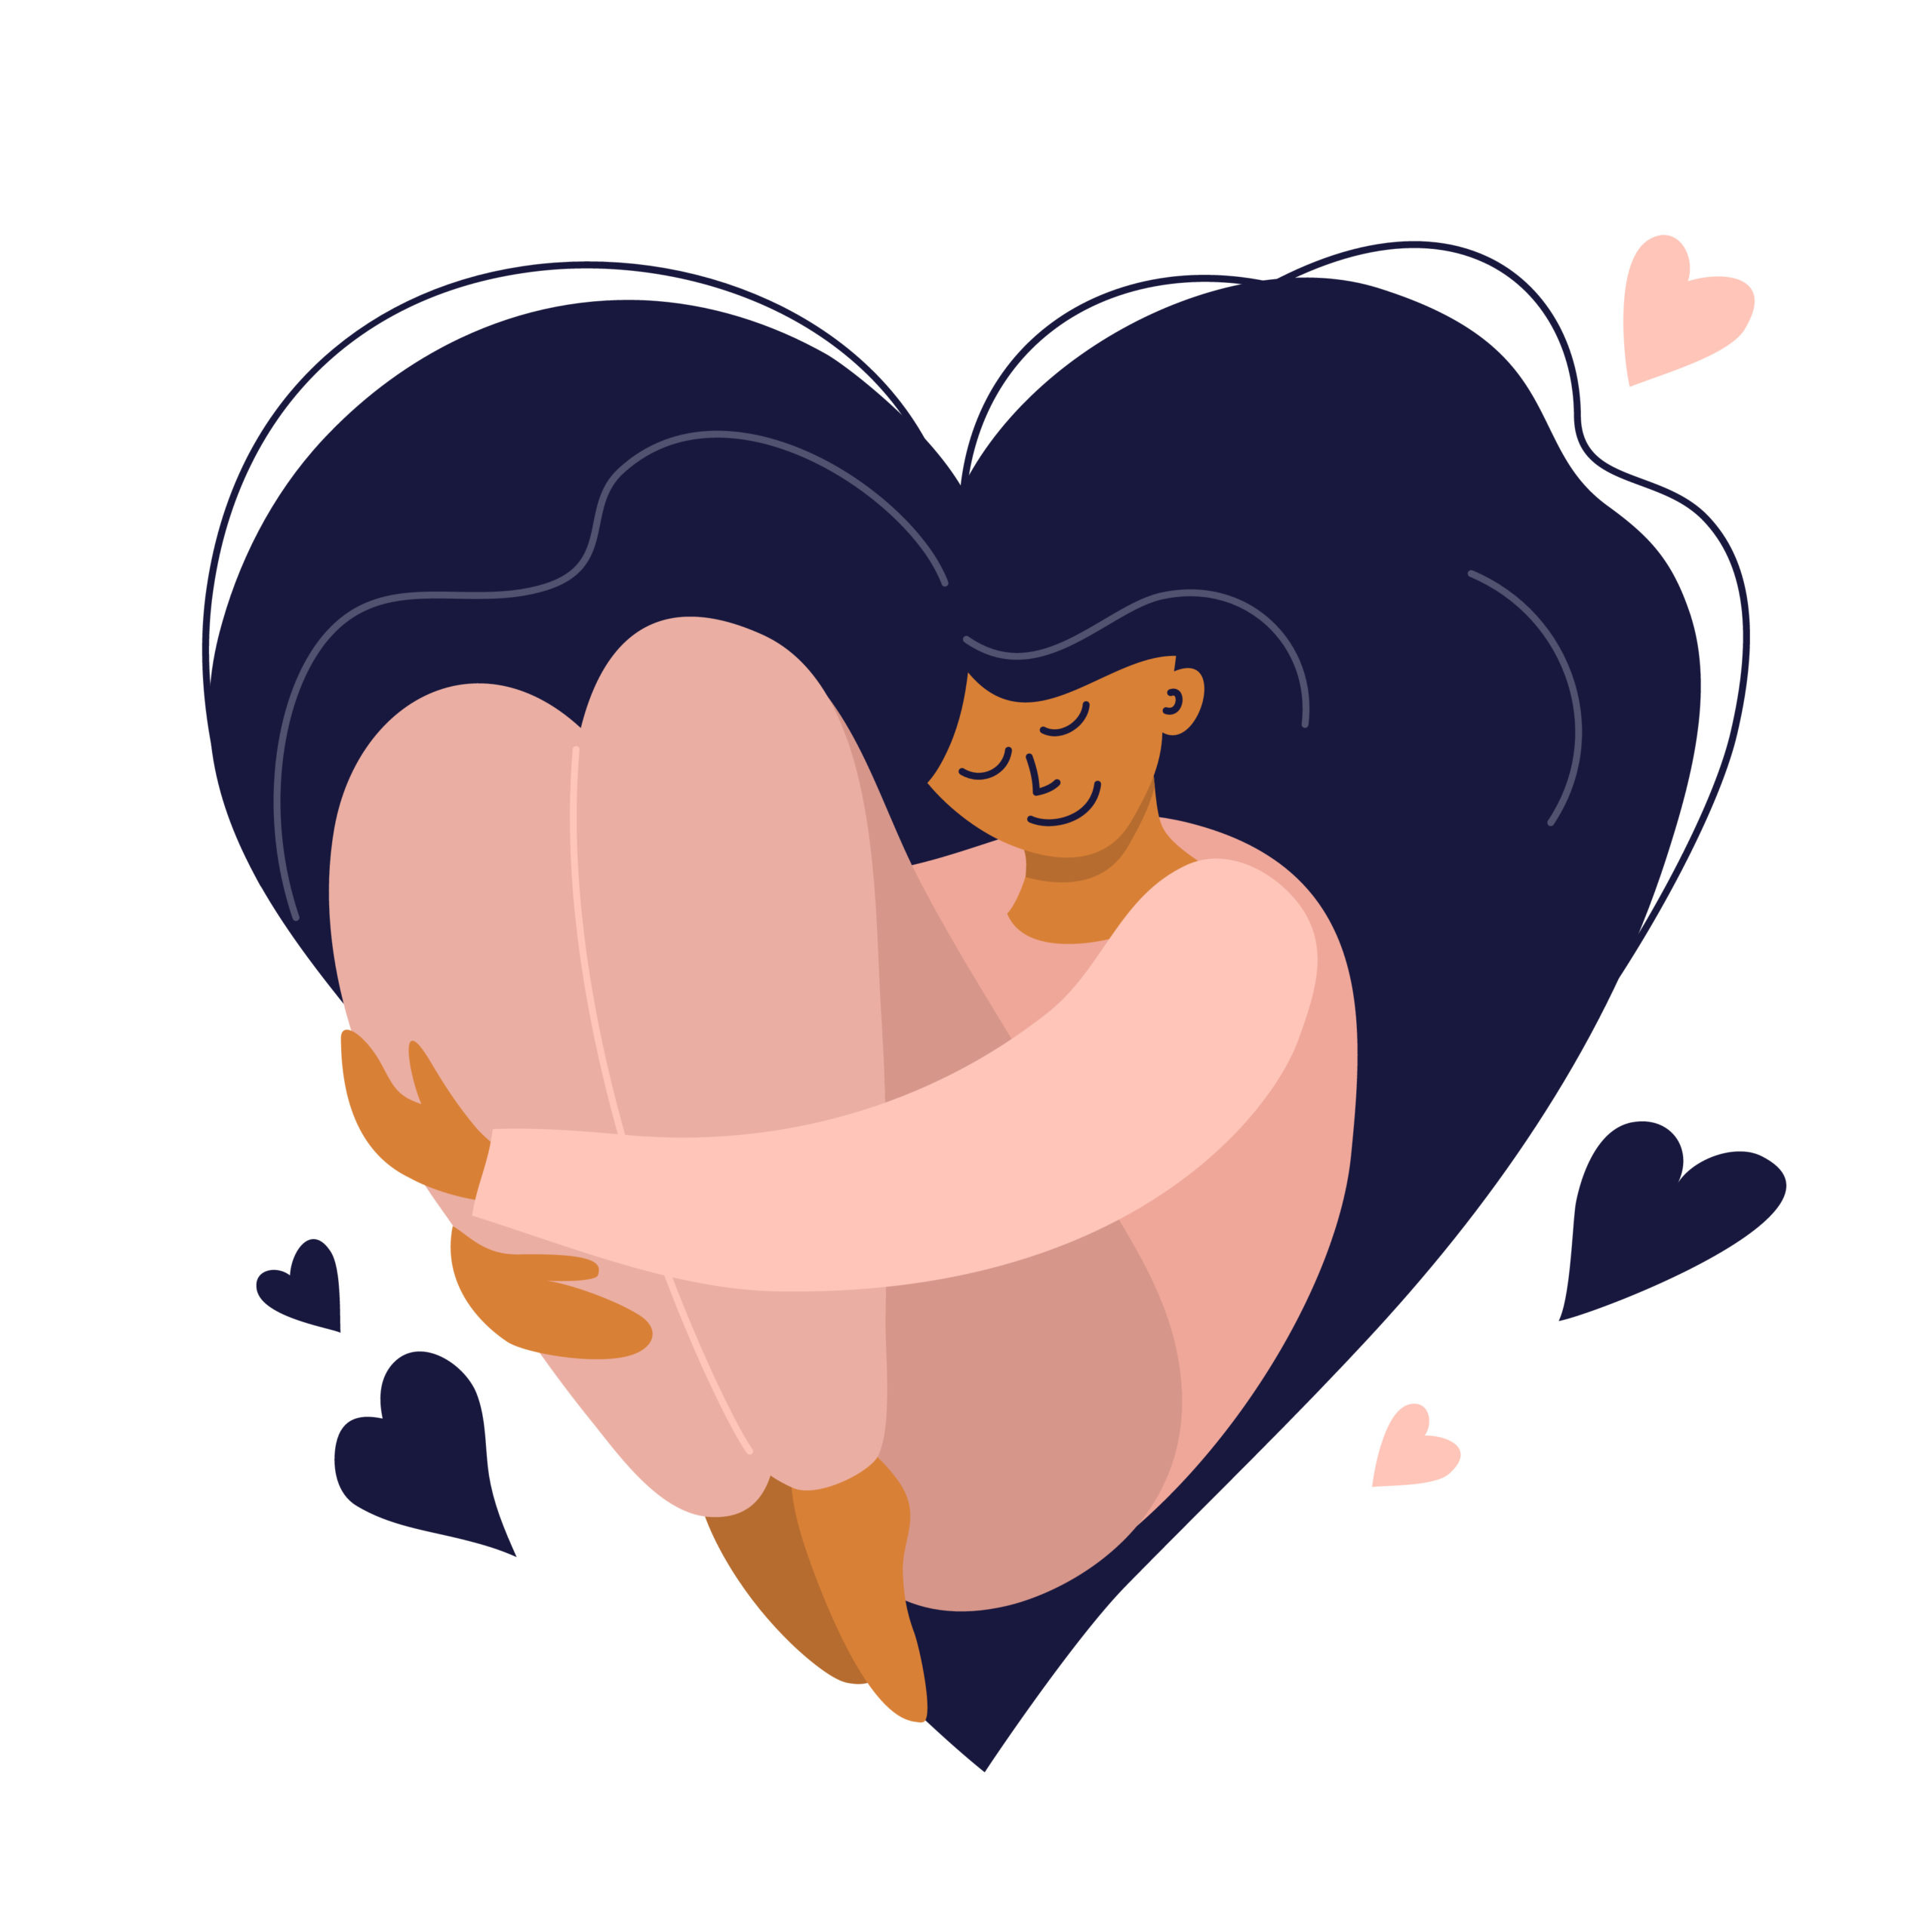 Cute girl with heart shaped long hair. Self care, love yourself icon or body positive concept. Happy woman hugs her knees. Illustration of International Women's day. Vector postcard, valentines card.